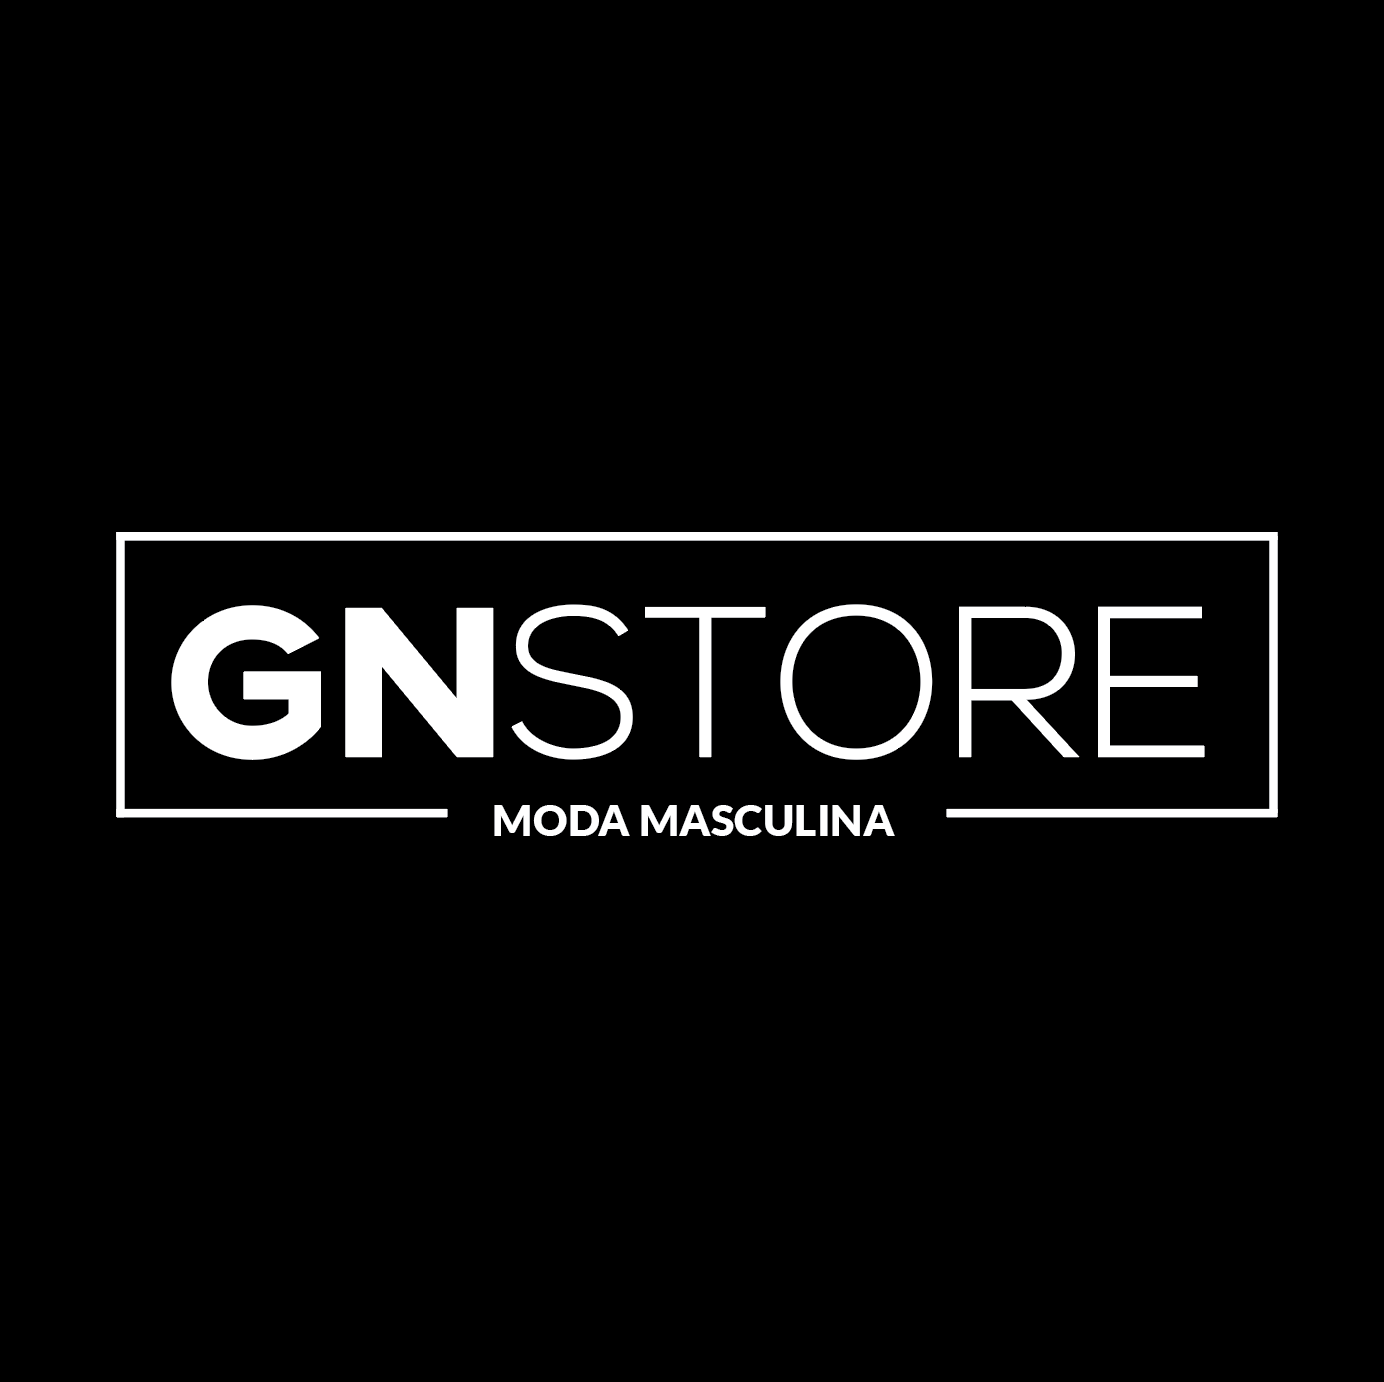 GN STORE